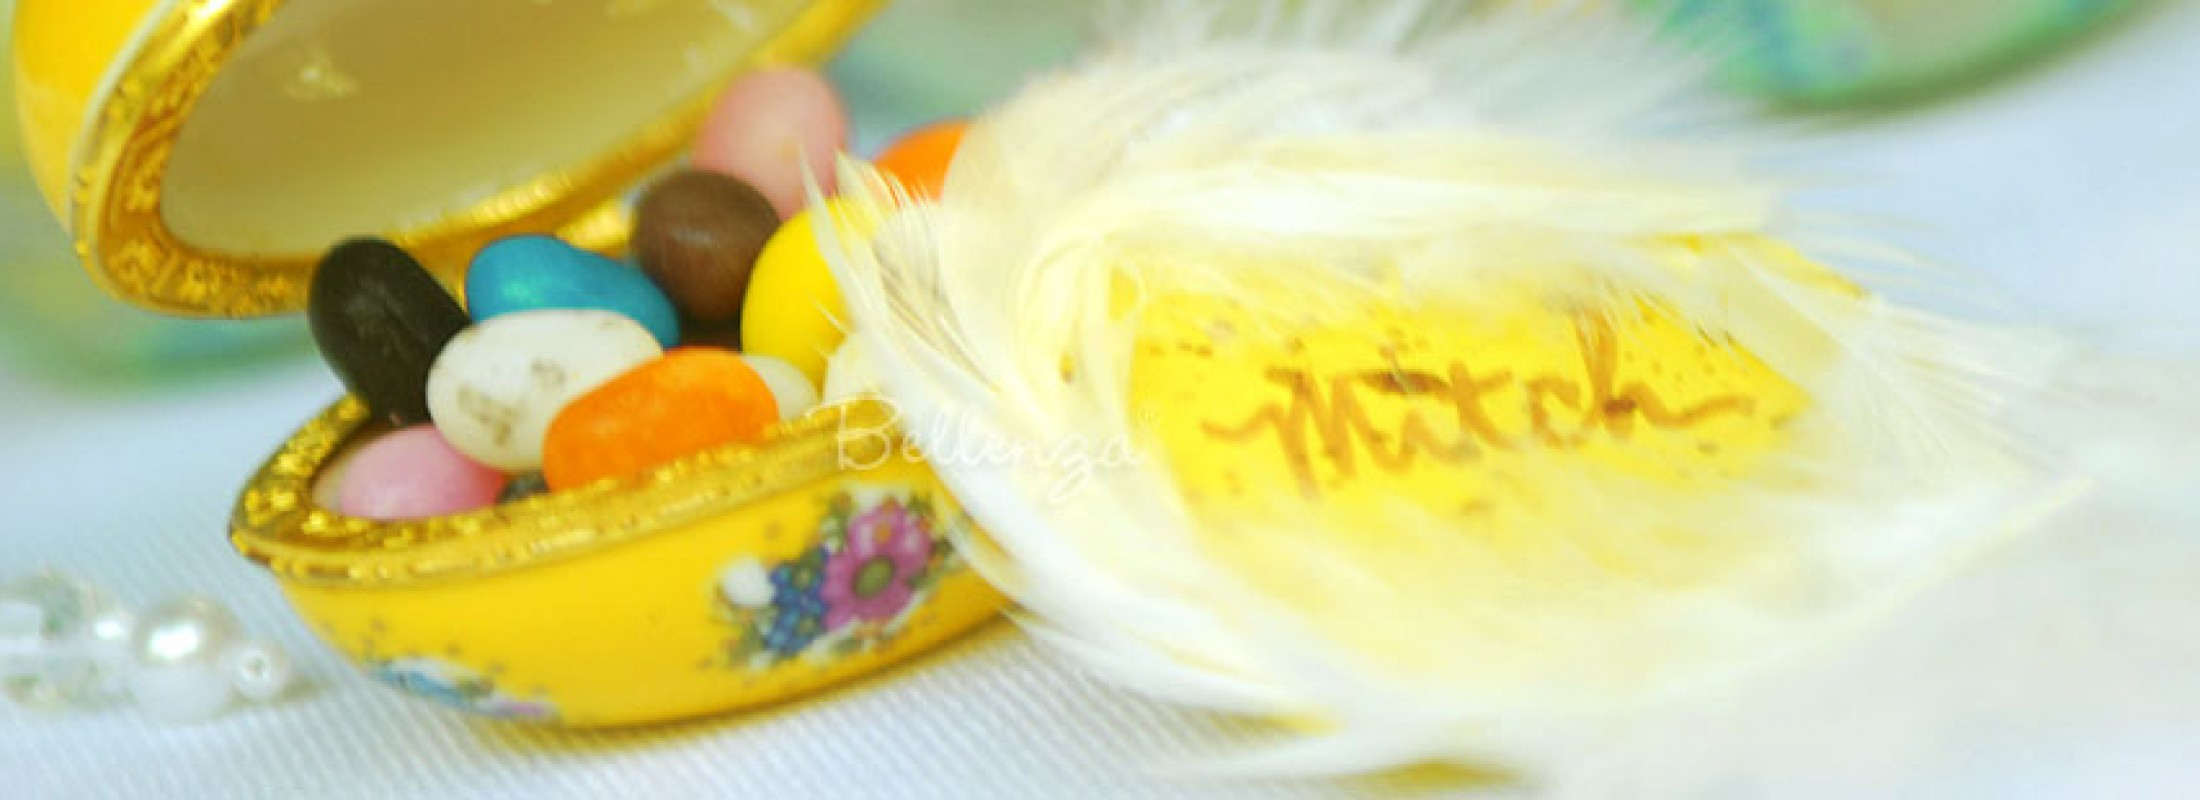 Easter chick cards DIY. Photo by Bellenza.